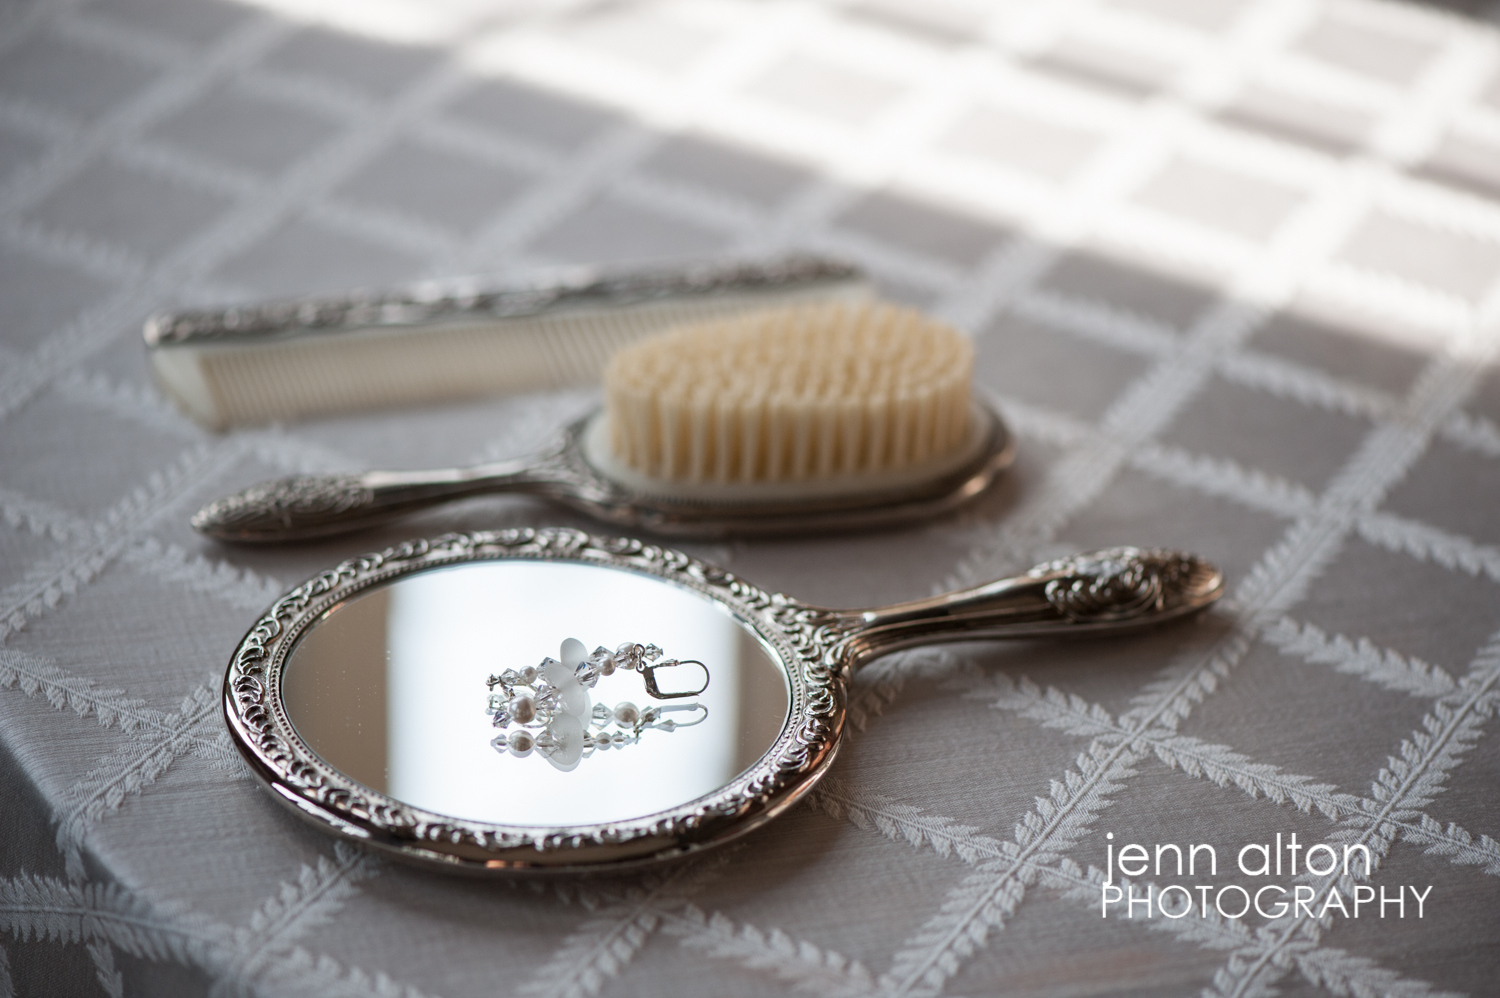 Earrings & comb, brush, mirror, wedding day, Searles Castle